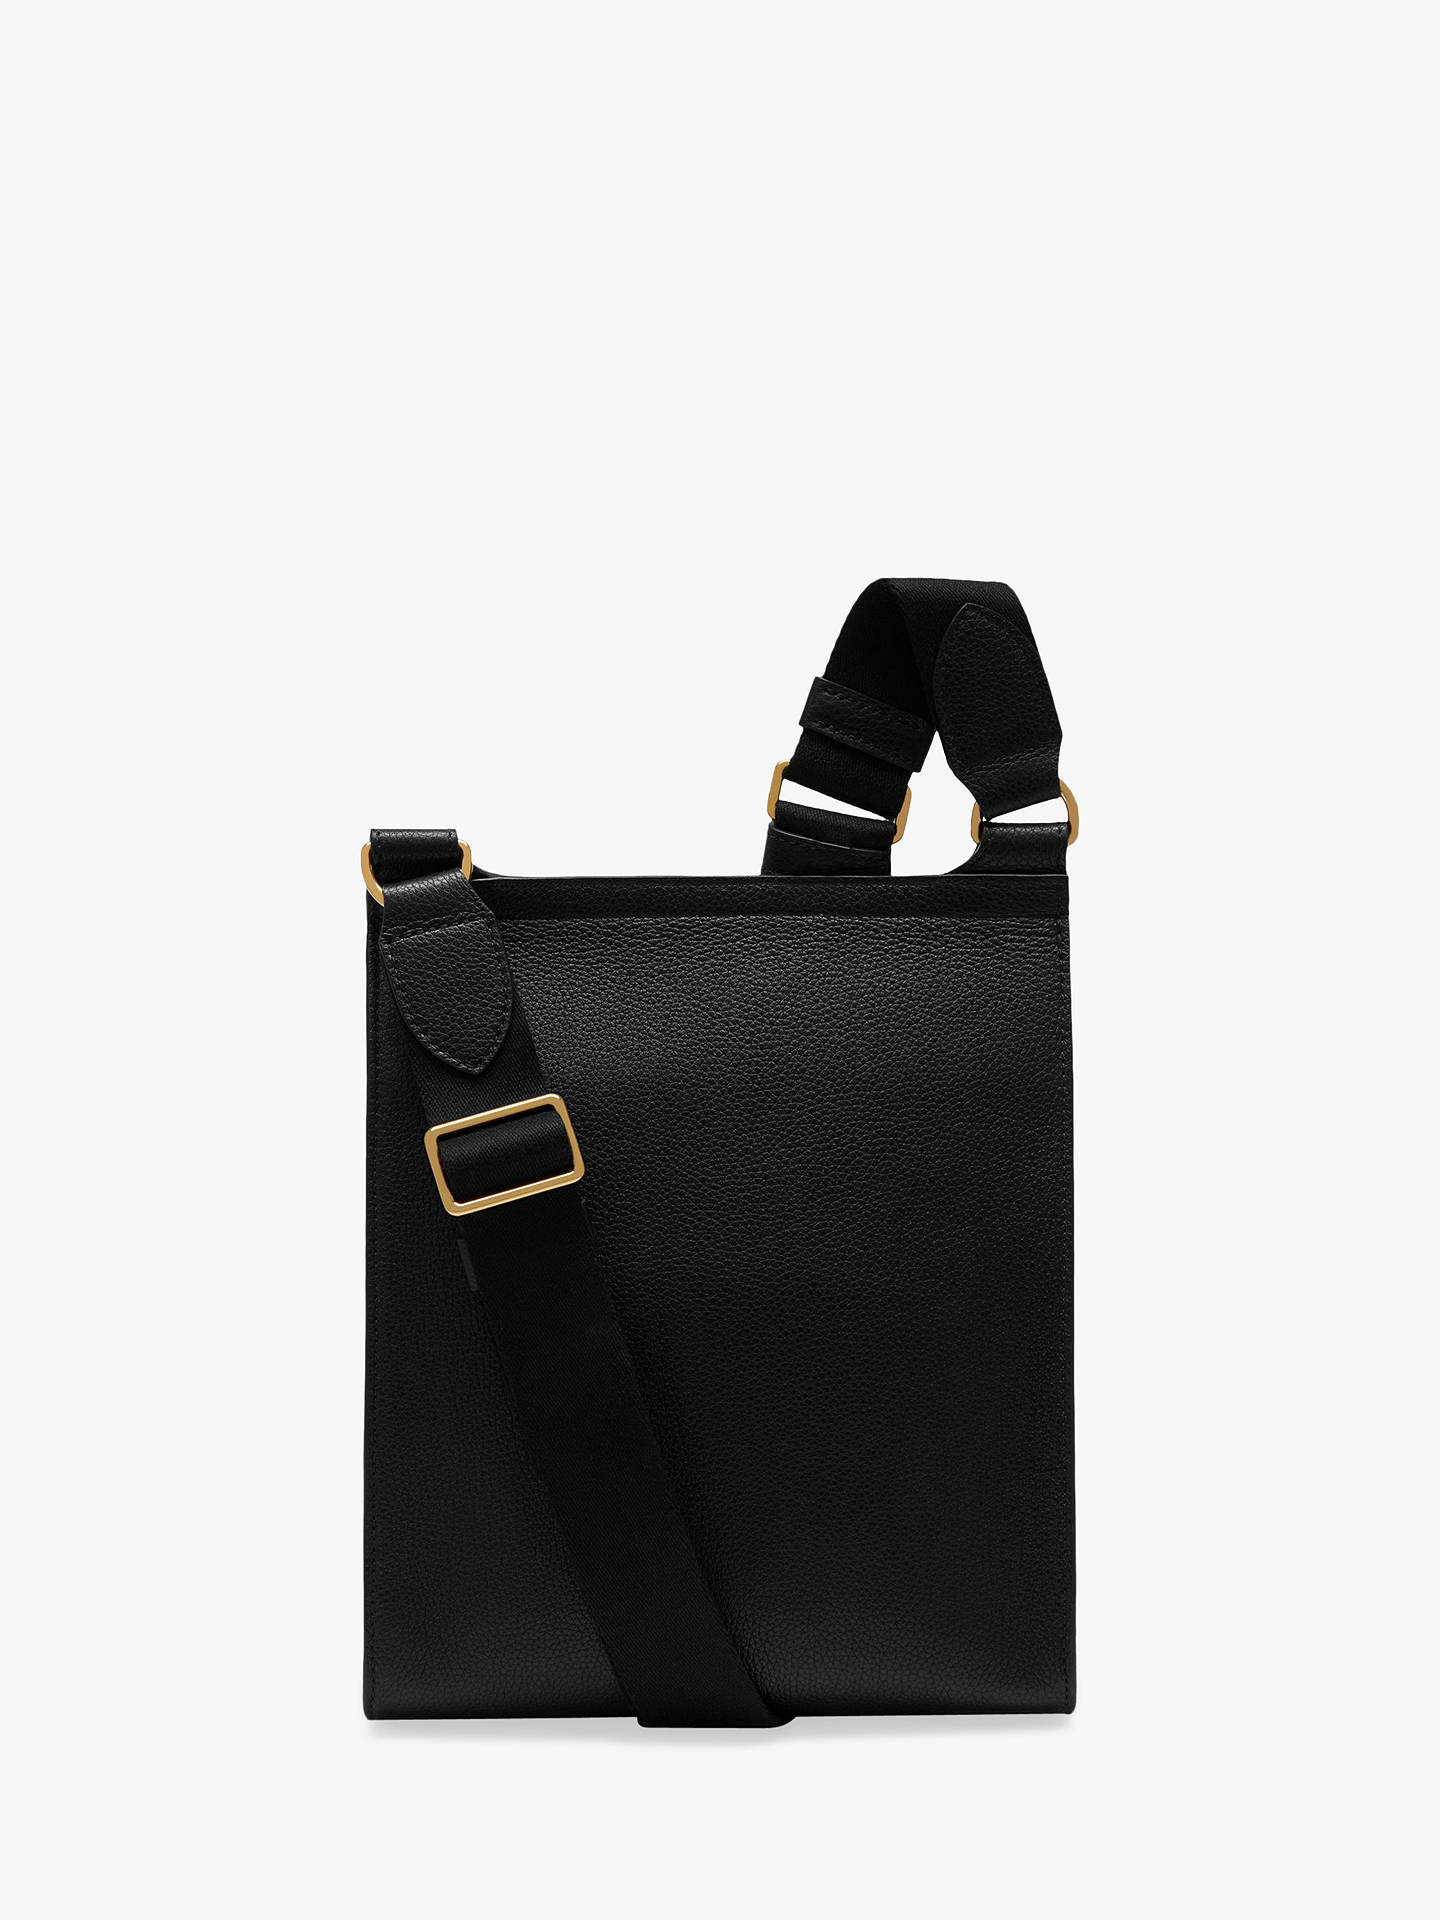 6c8a5eb9ae2 ... Buy Mulberry New Antony Small Classic Grain Leather Satchel, Black  Online at johnlewis.com ...